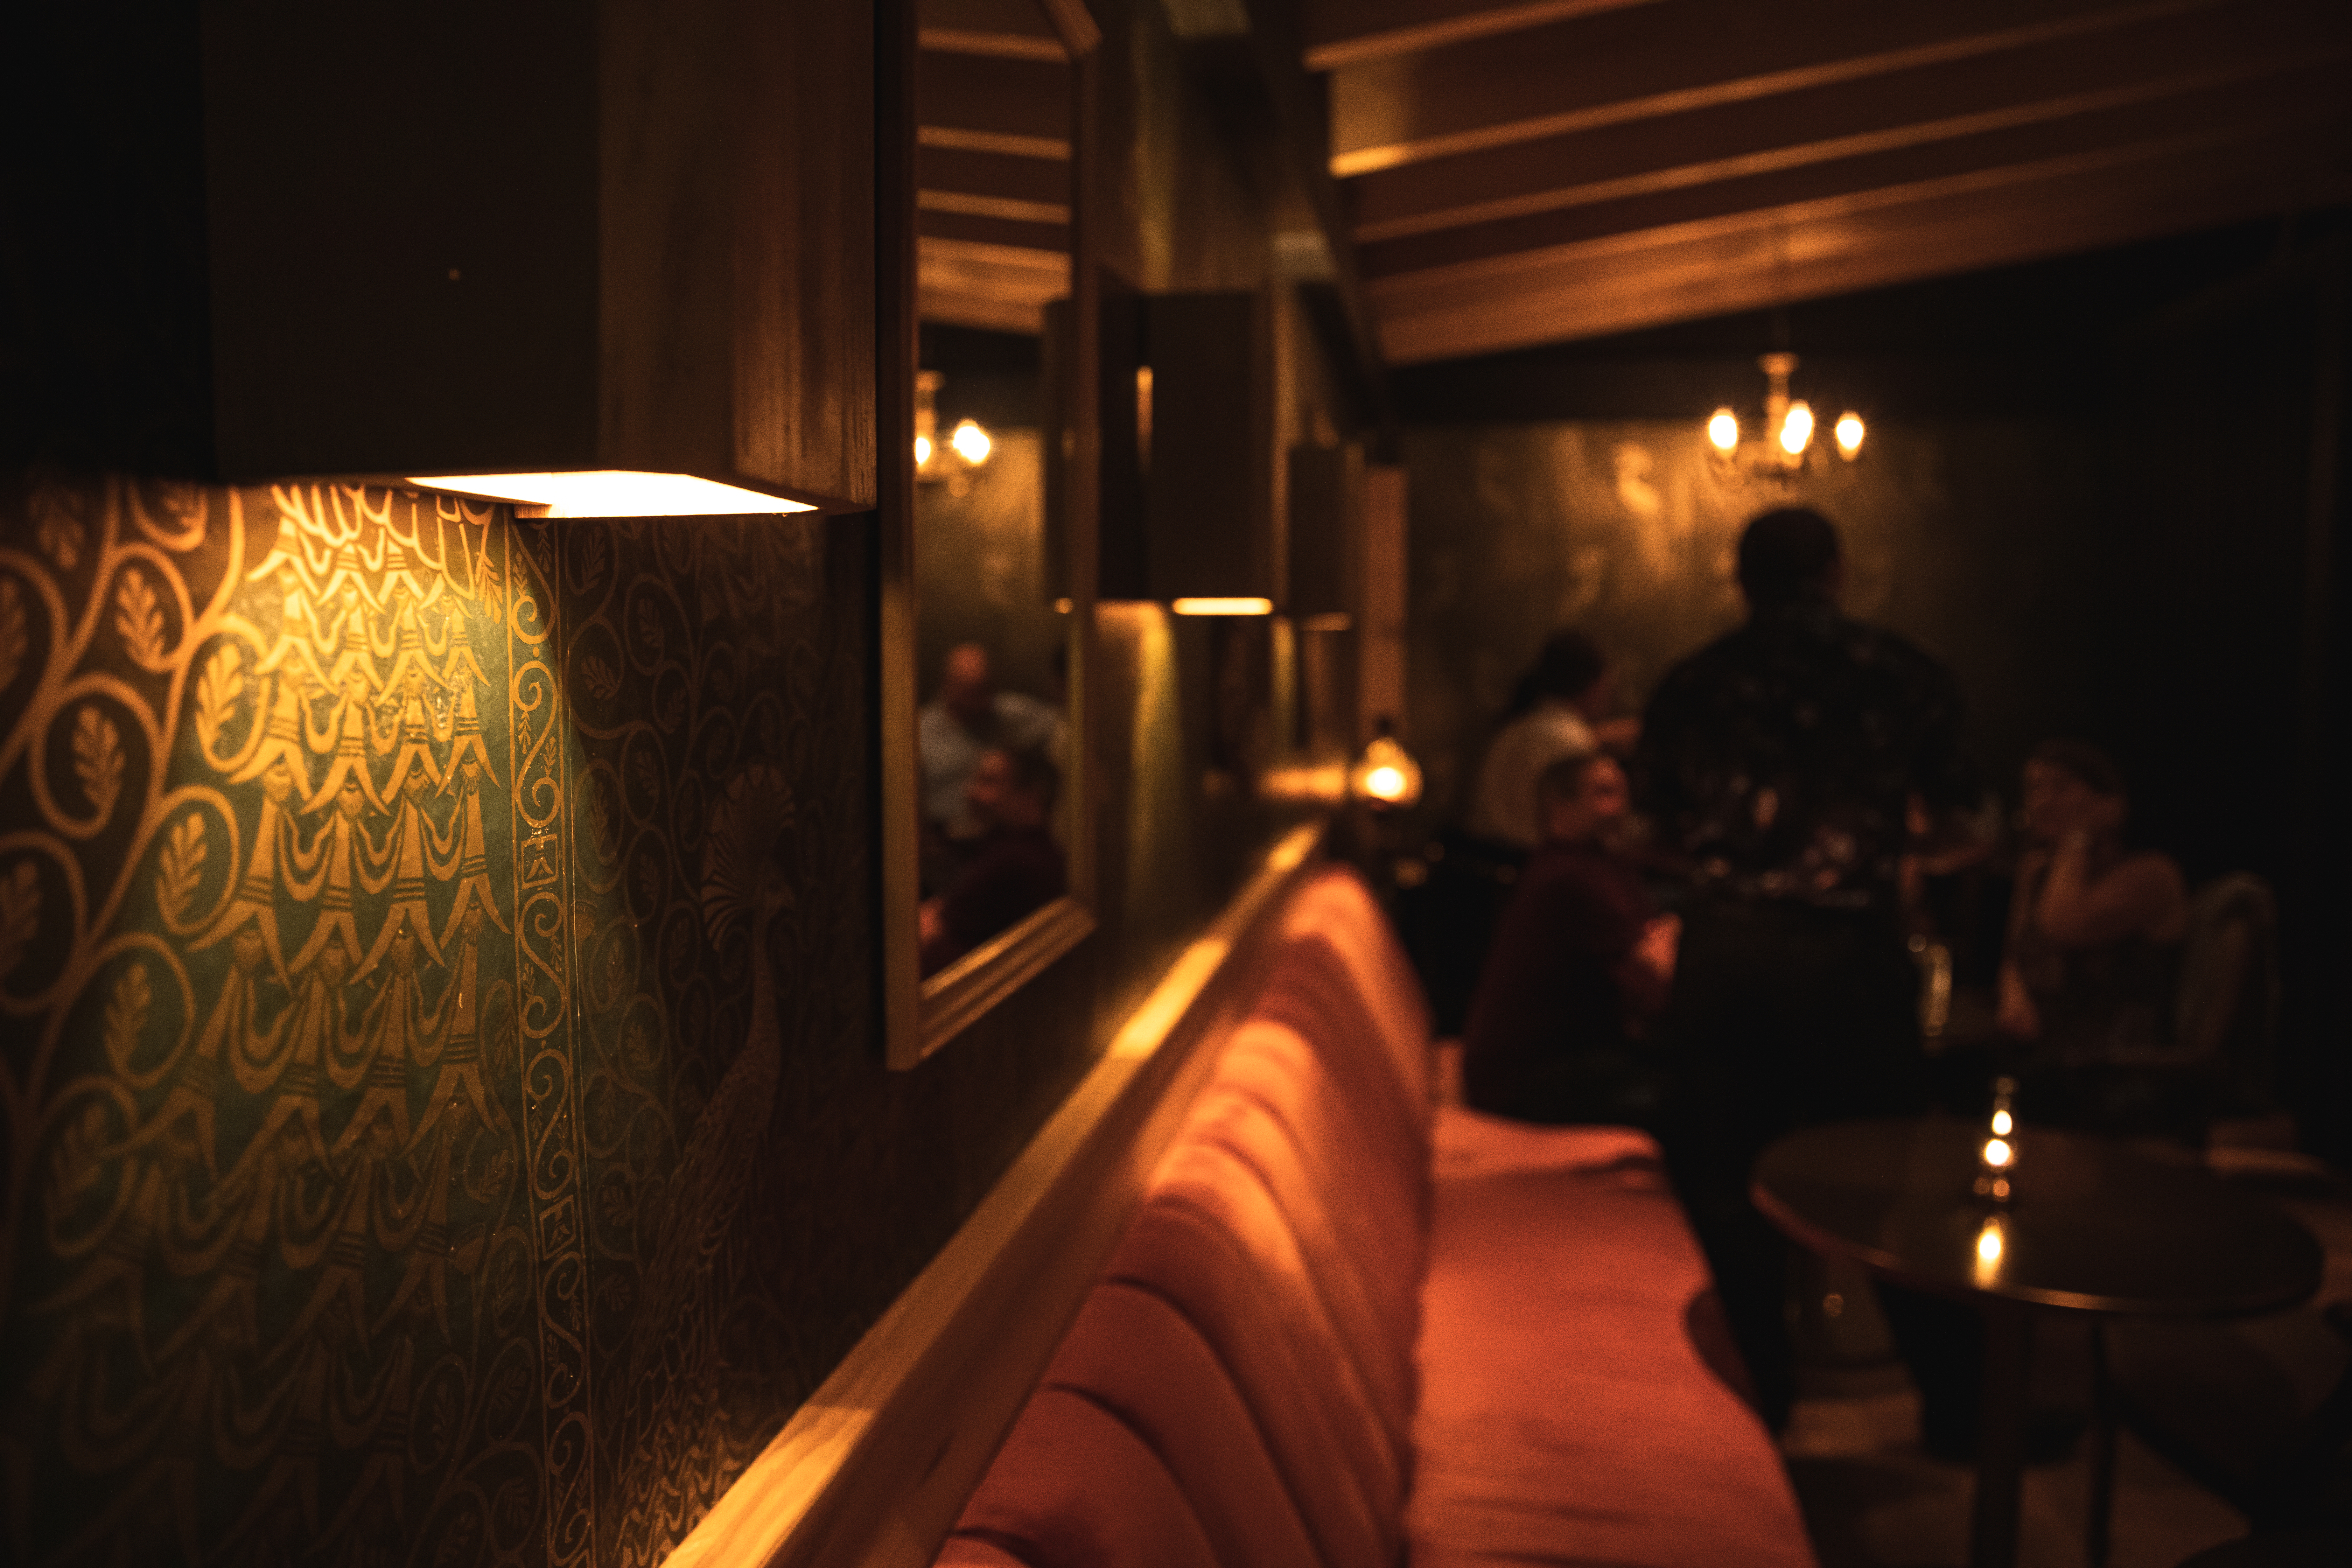 The interior of Dallas cocktail bar Apothecary, with peacock-printed wallpaper and velvet banquettes